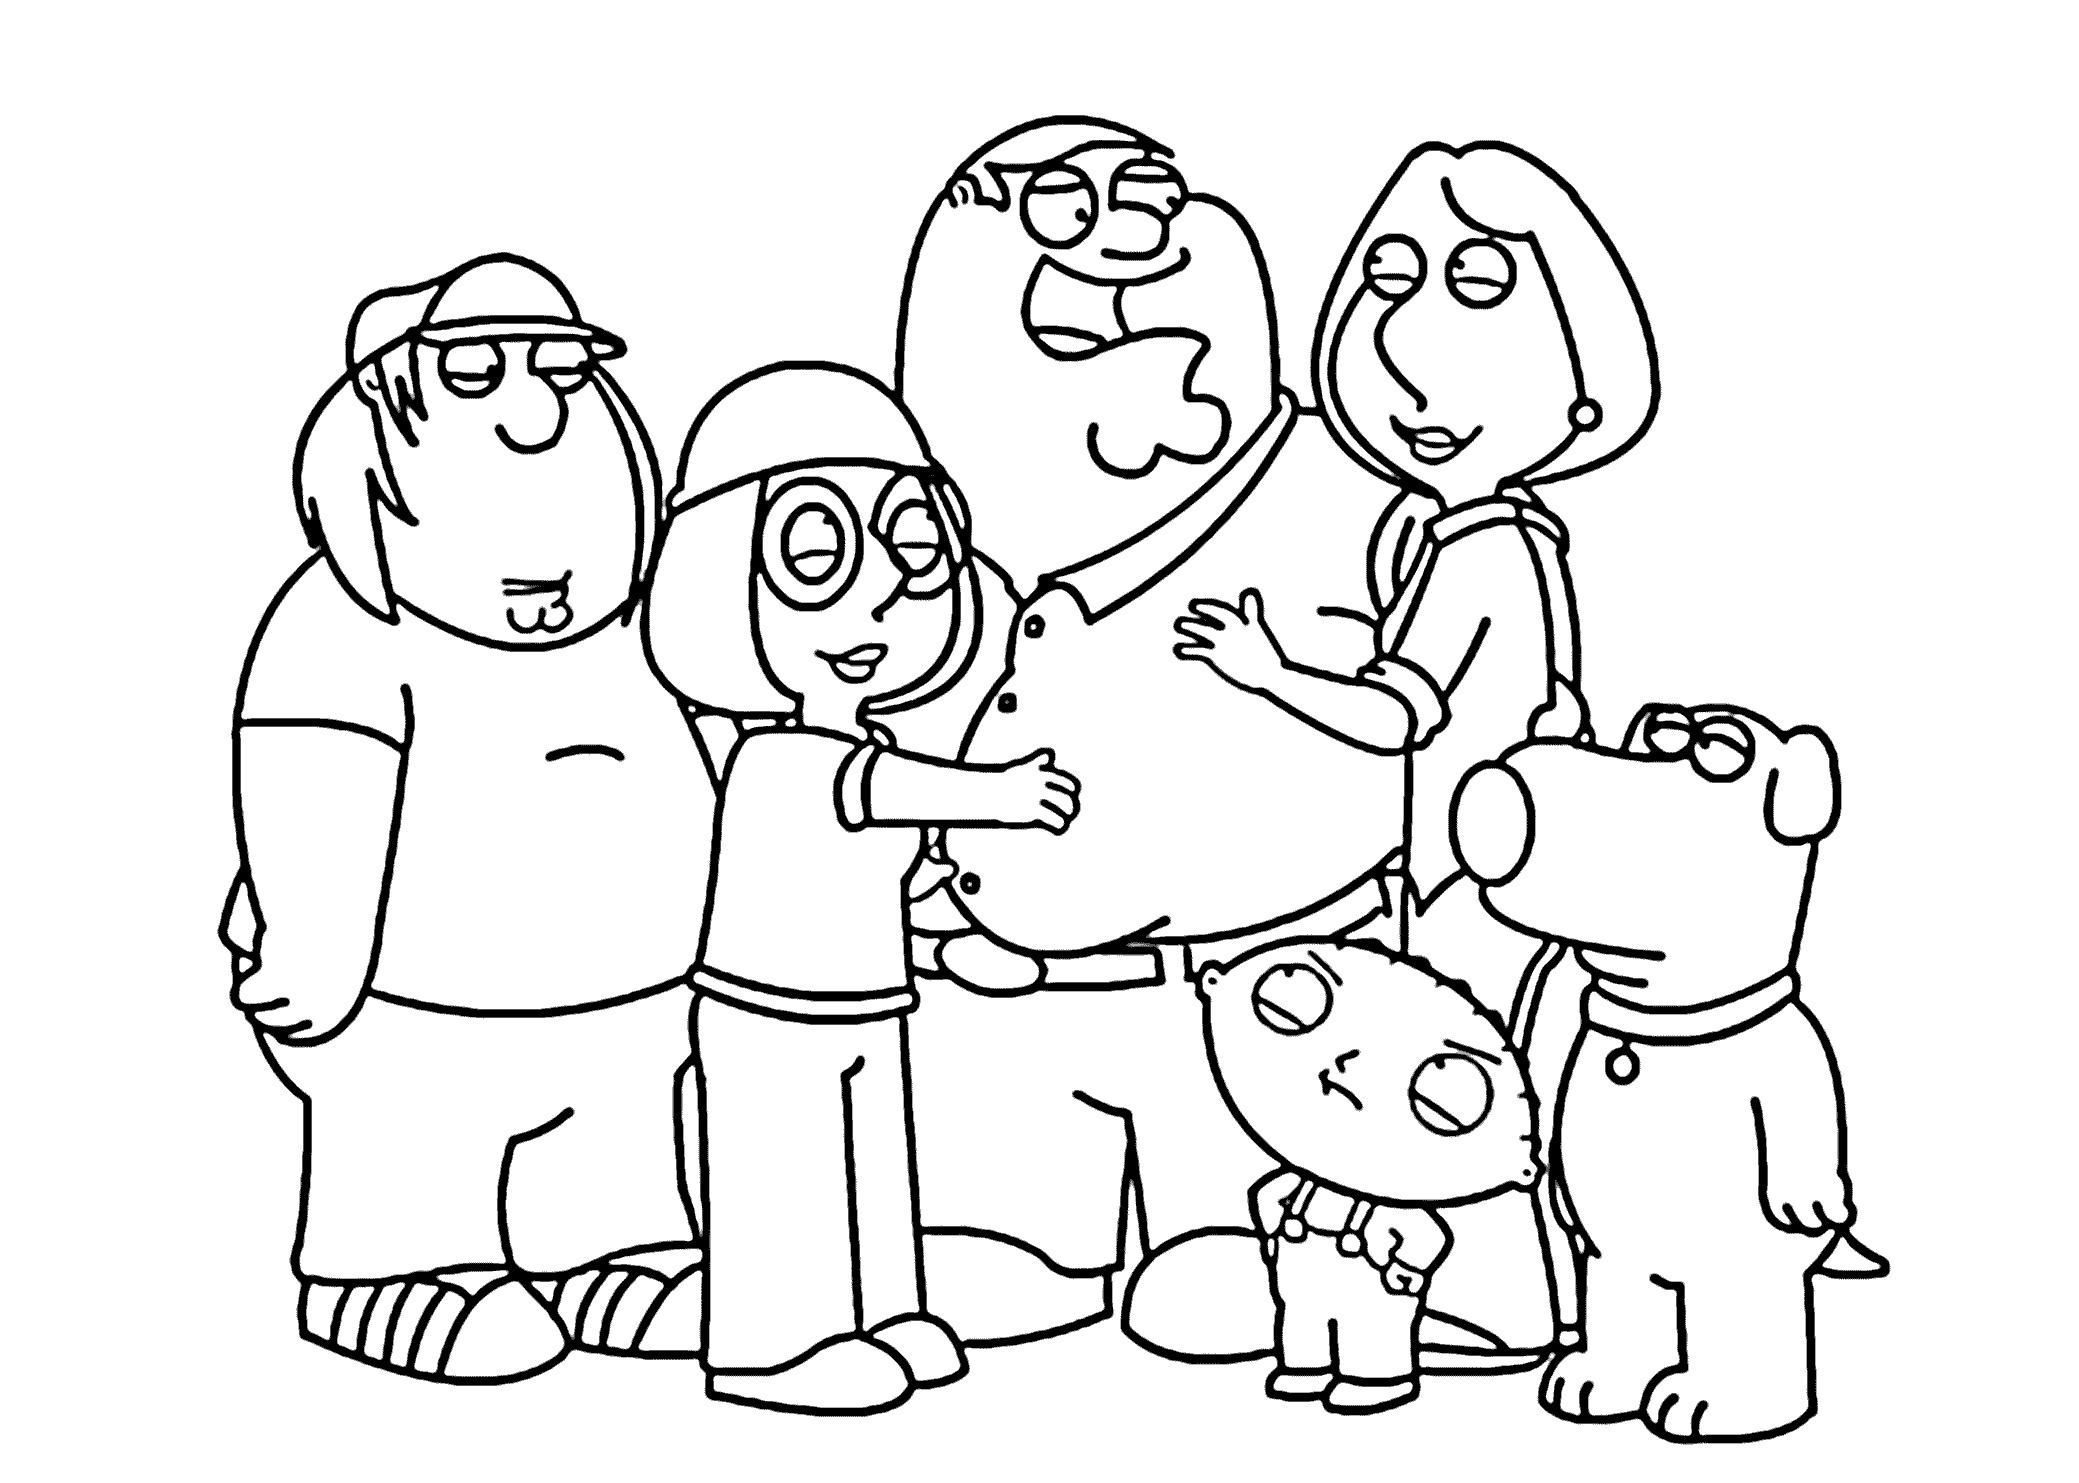 Best ideas about Coloring Pages For Girls From I Love My Family . Save or Pin I Love My Family Coloring Pages Now.